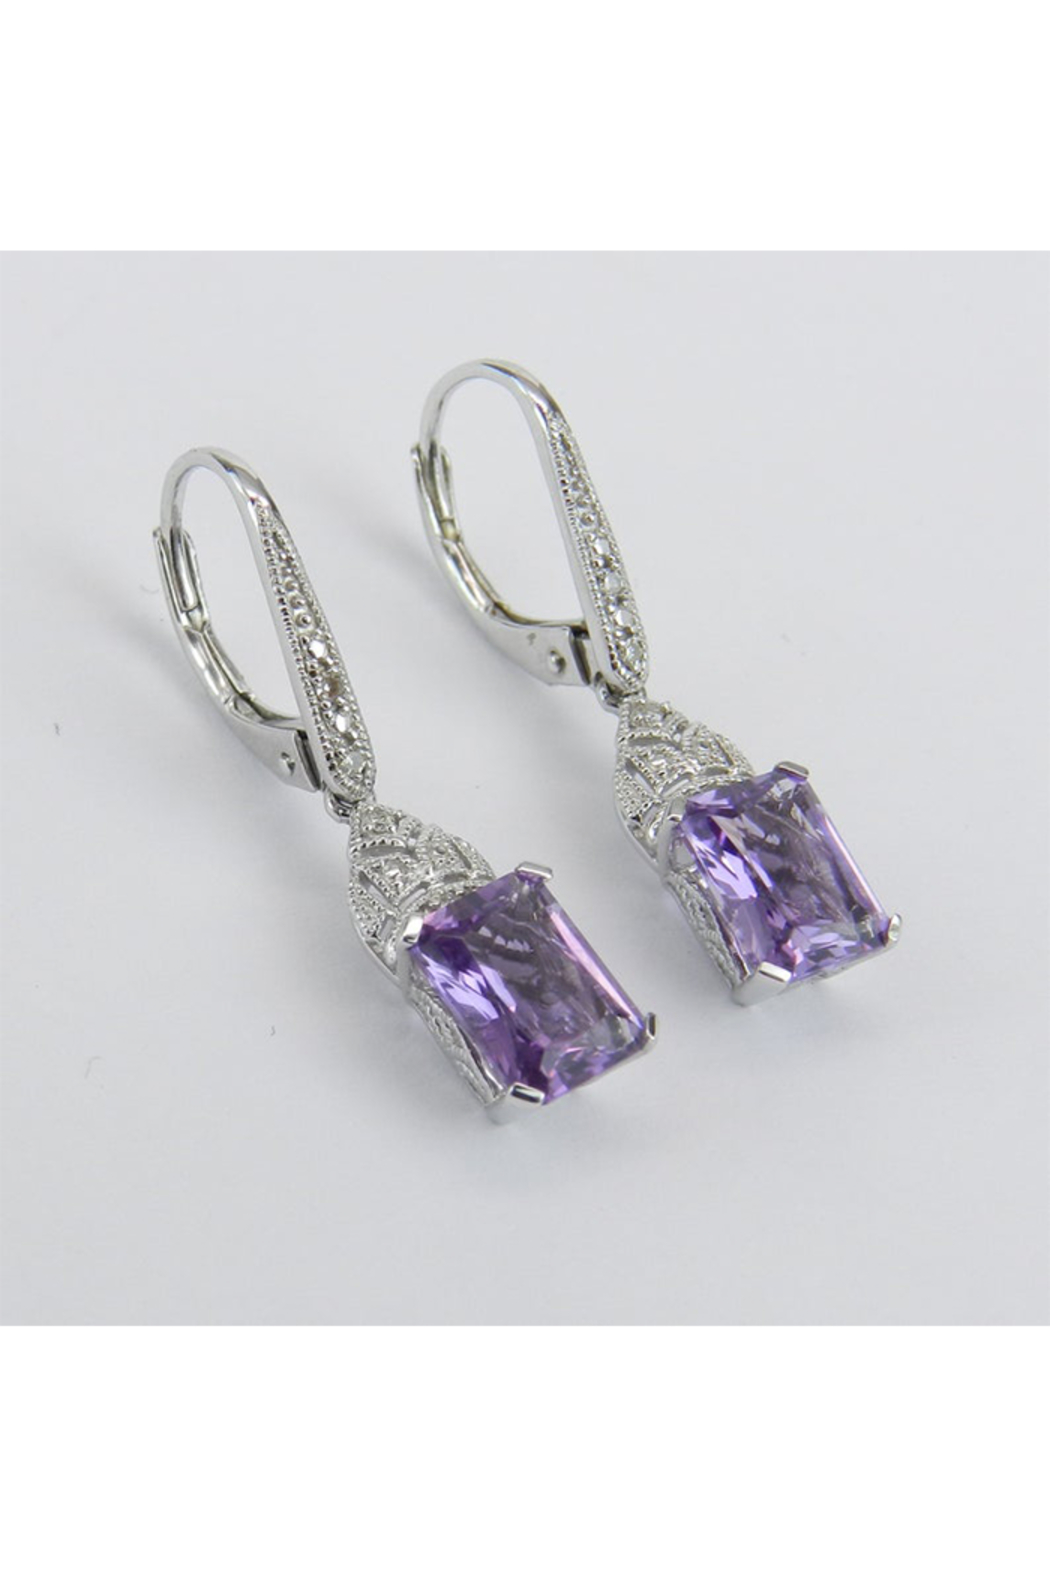 Margolin & Co 14K White Gold Diamond and Radiant Cut Amethyst Drop Earrings February Birthday - Front Full Image